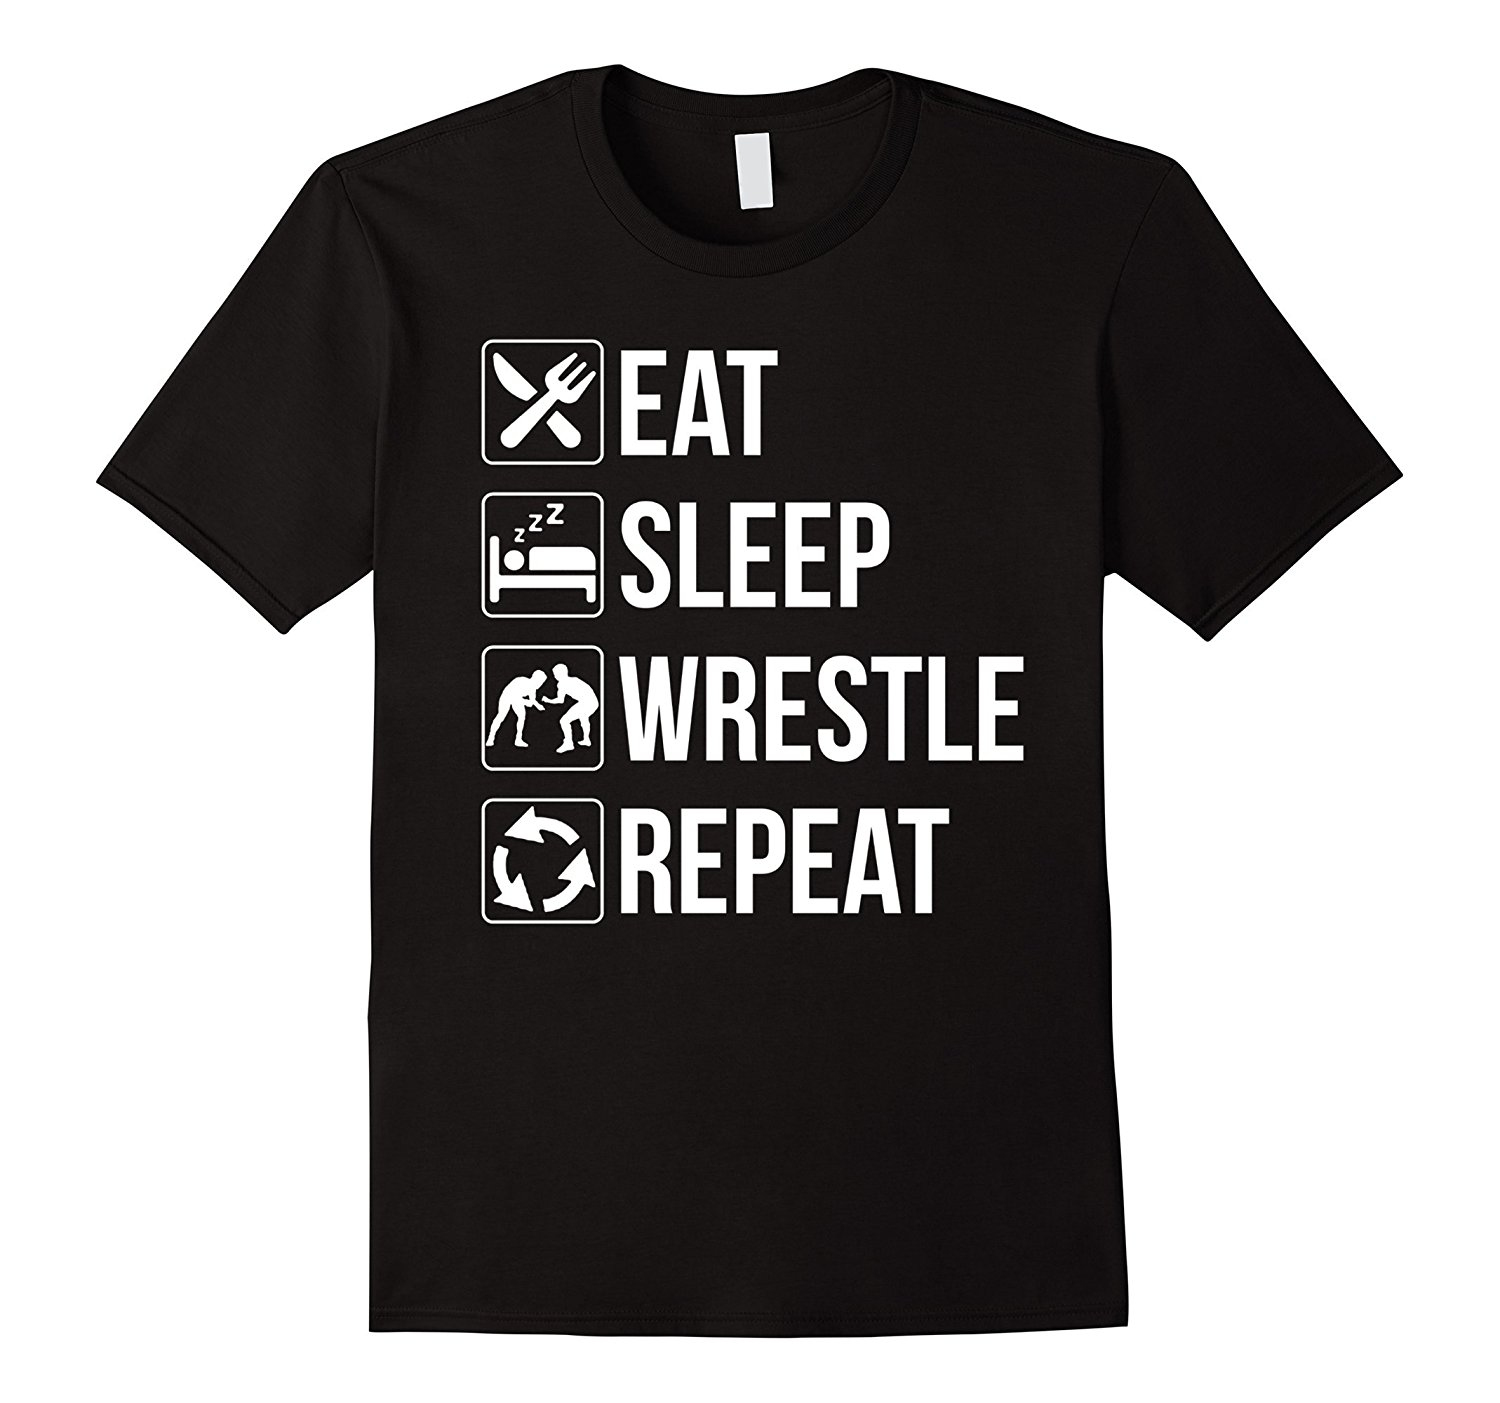 Gildan Funny Eat Sleep Wrestle Repeat Wrestling TShirt